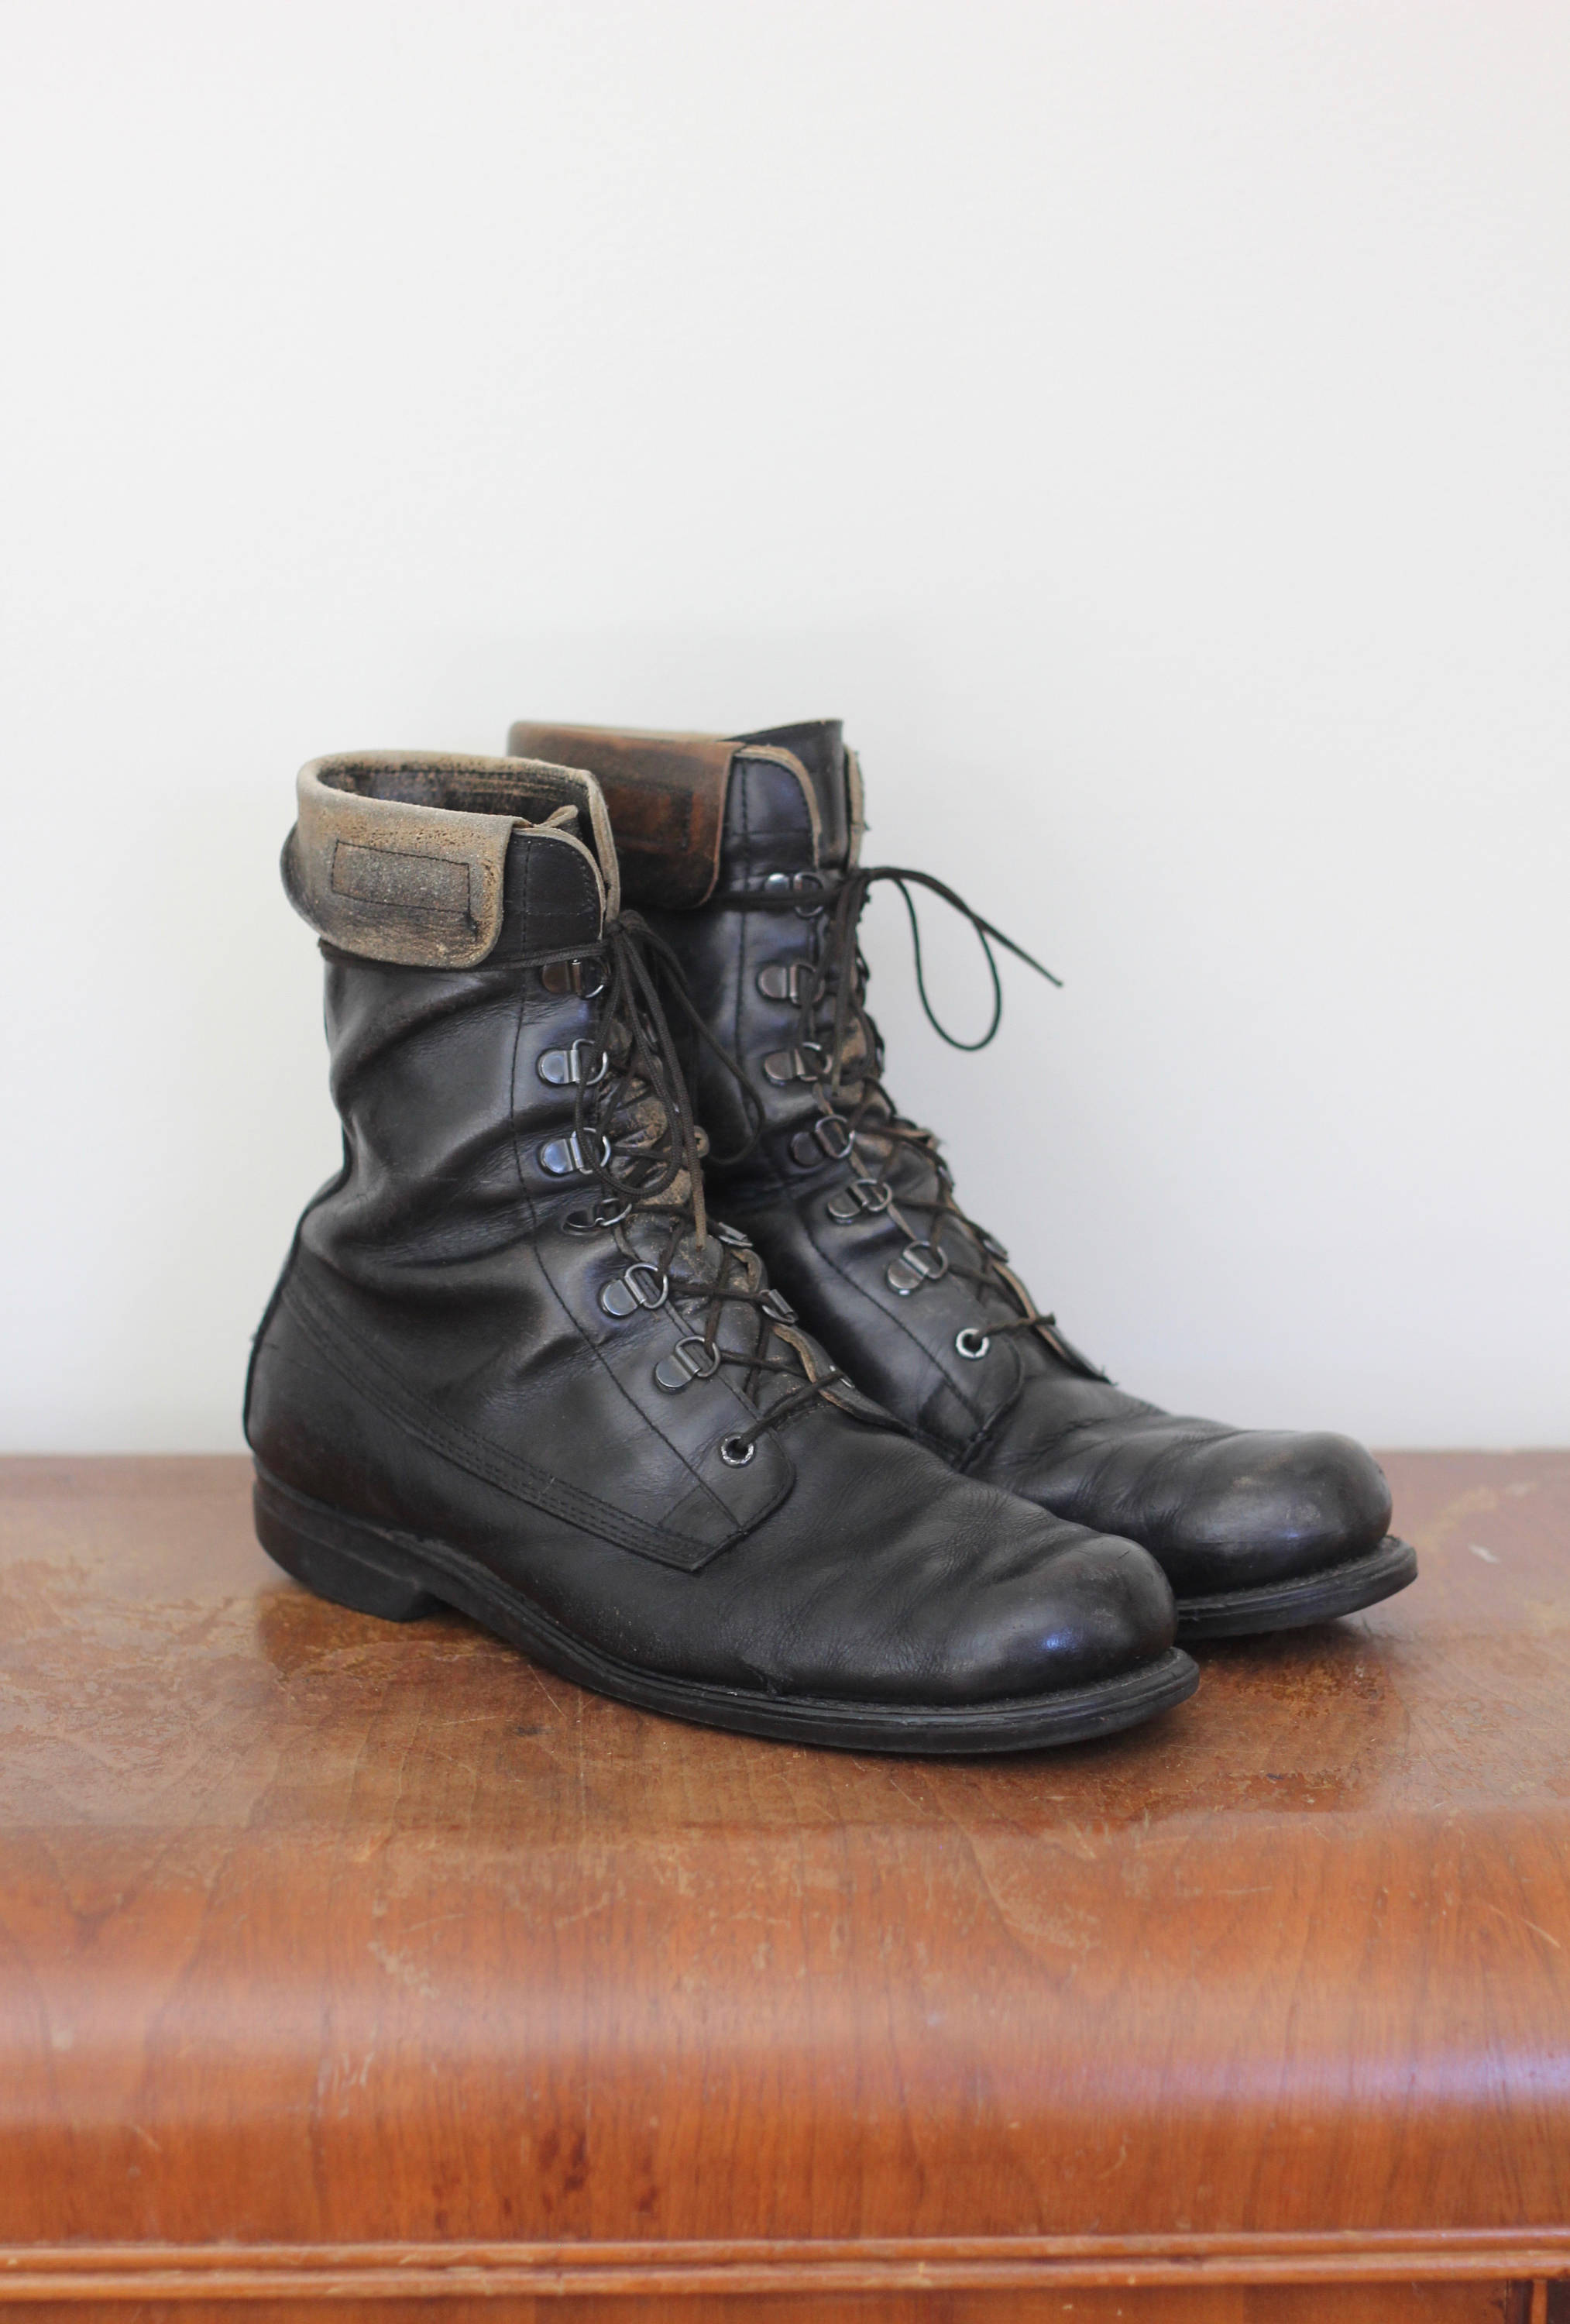 eede0ed136f6 70 s Black Leather Lace Up Boots Size 9 Combat Military Work Boots ...